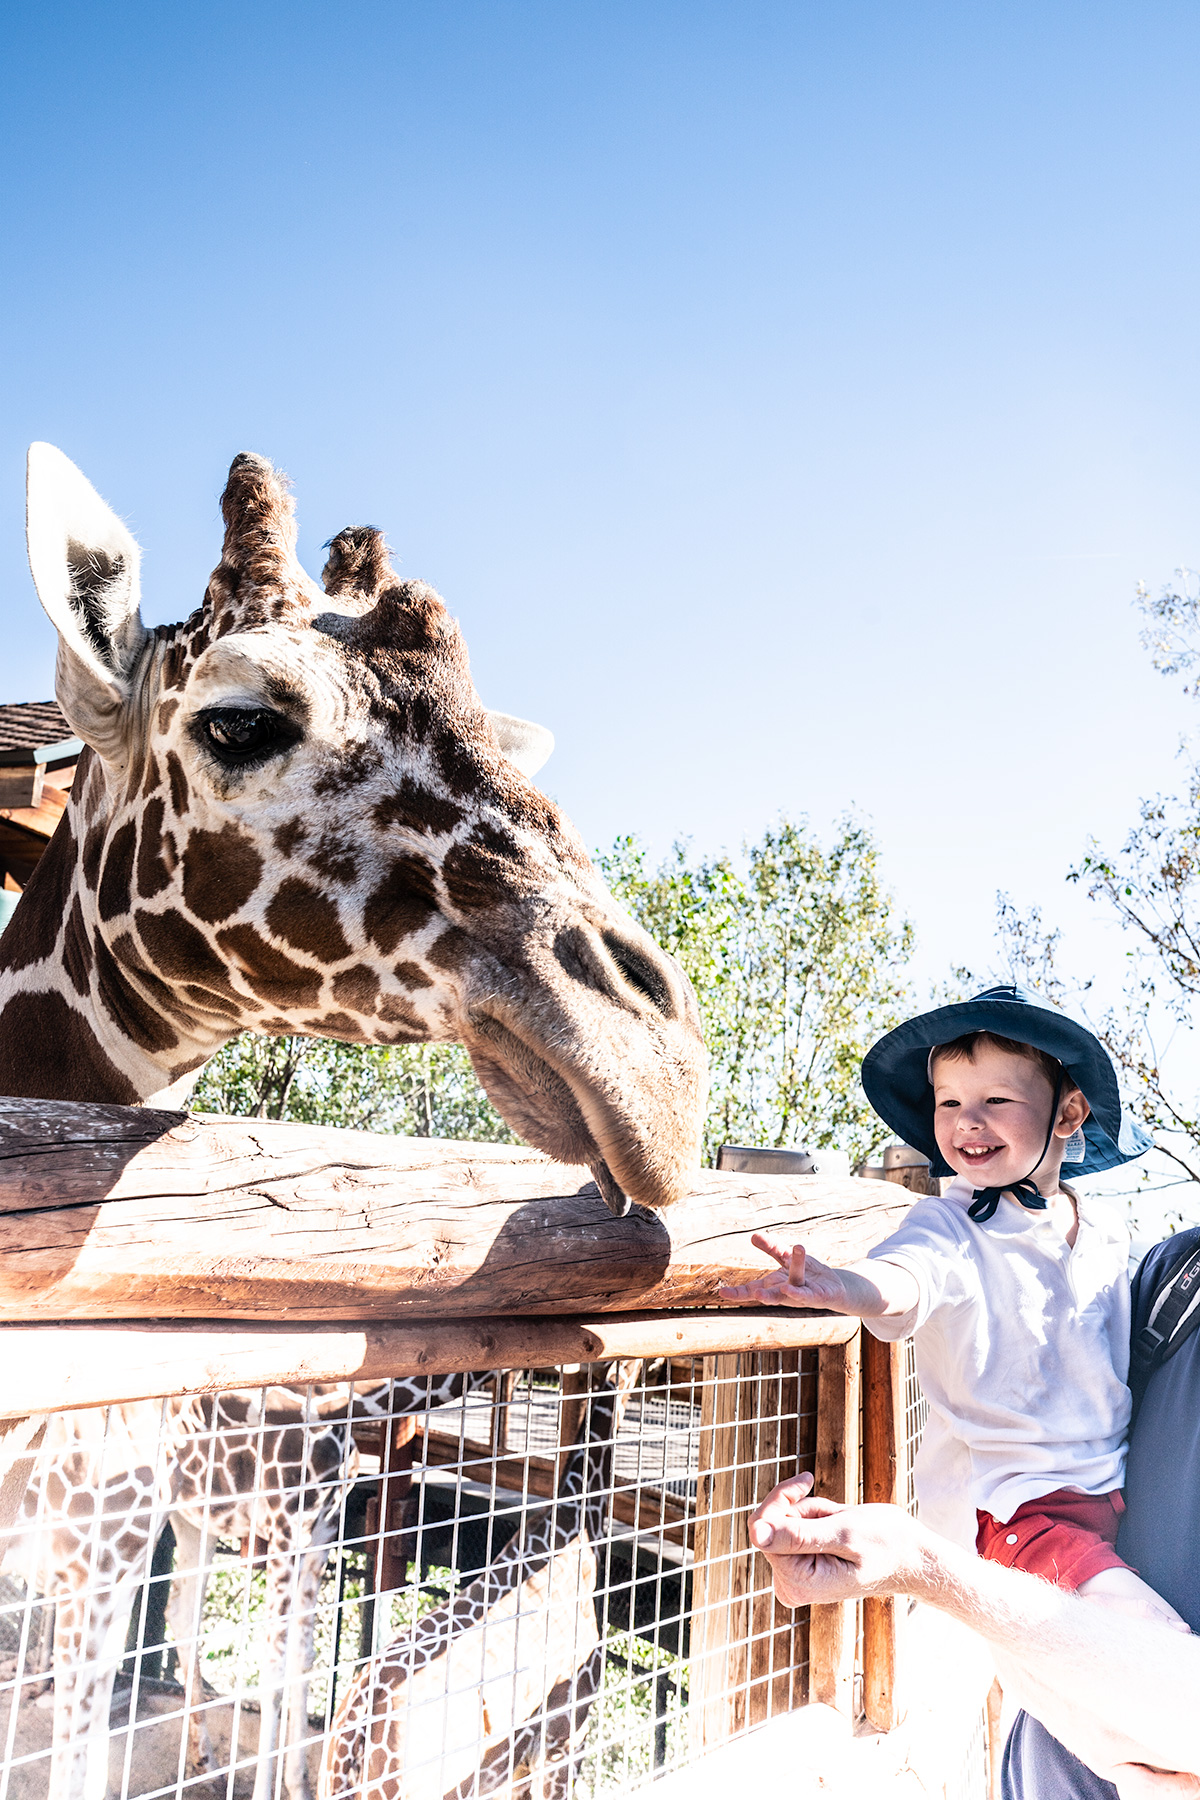 Feeding-Giraffes-at-Cheyenne-Mountain-Zoo